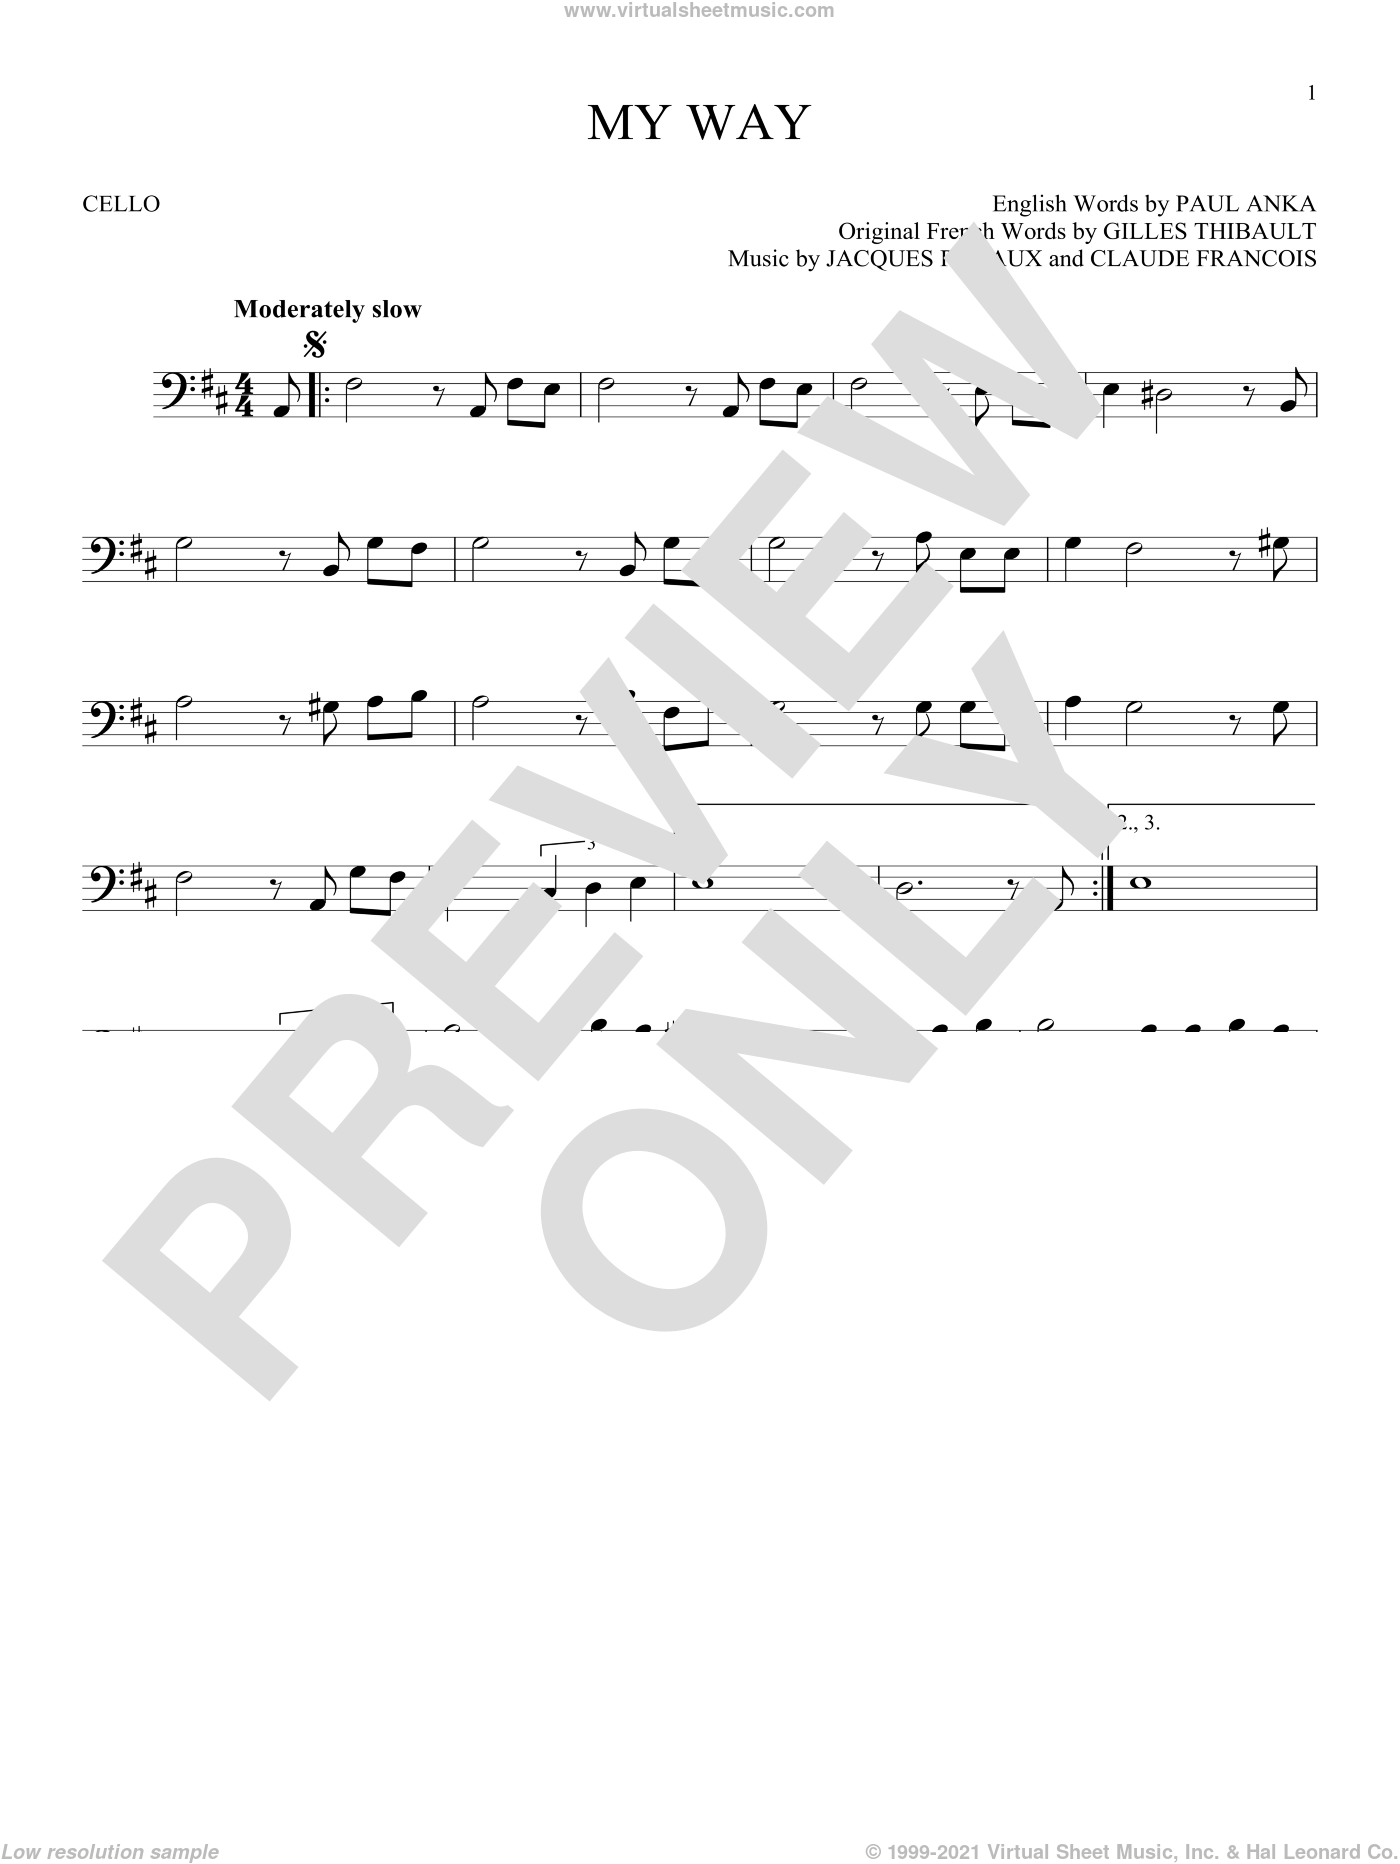 My Way sheet music for cello solo by Frank Sinatra, Claude Francois, Gilles Thibault, Jacques Revaux and Paul Anka, intermediate skill level